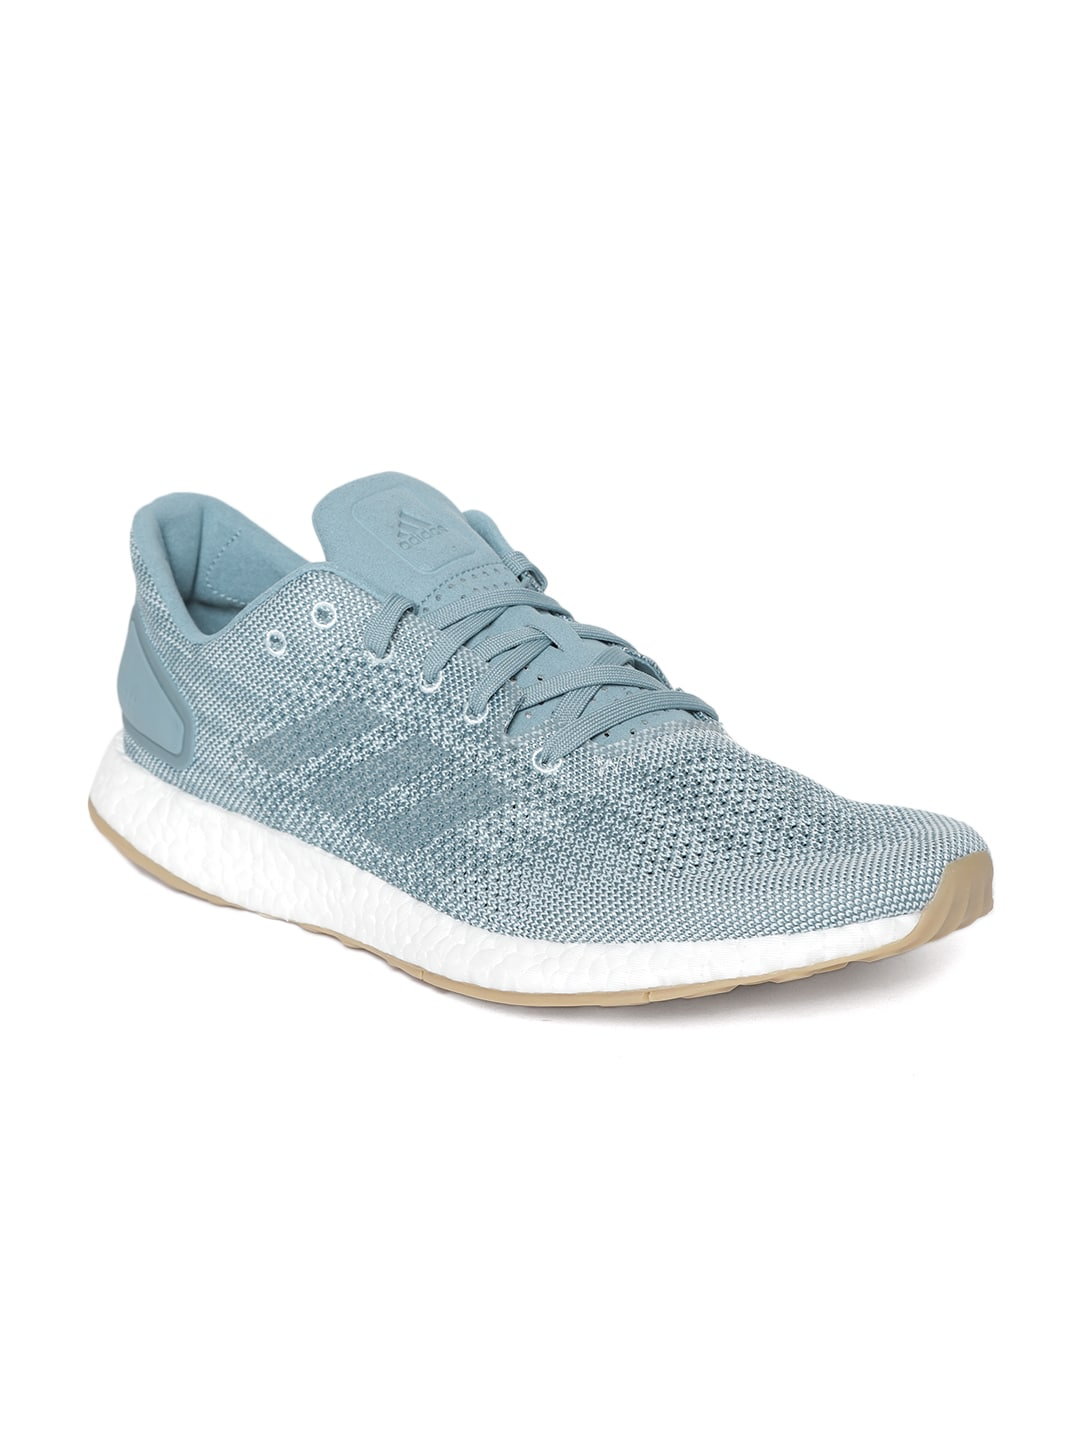 Label Adidas Tights Hat Sports Shoes - Buy Label Adidas Tights Hat Sports  Shoes online in India